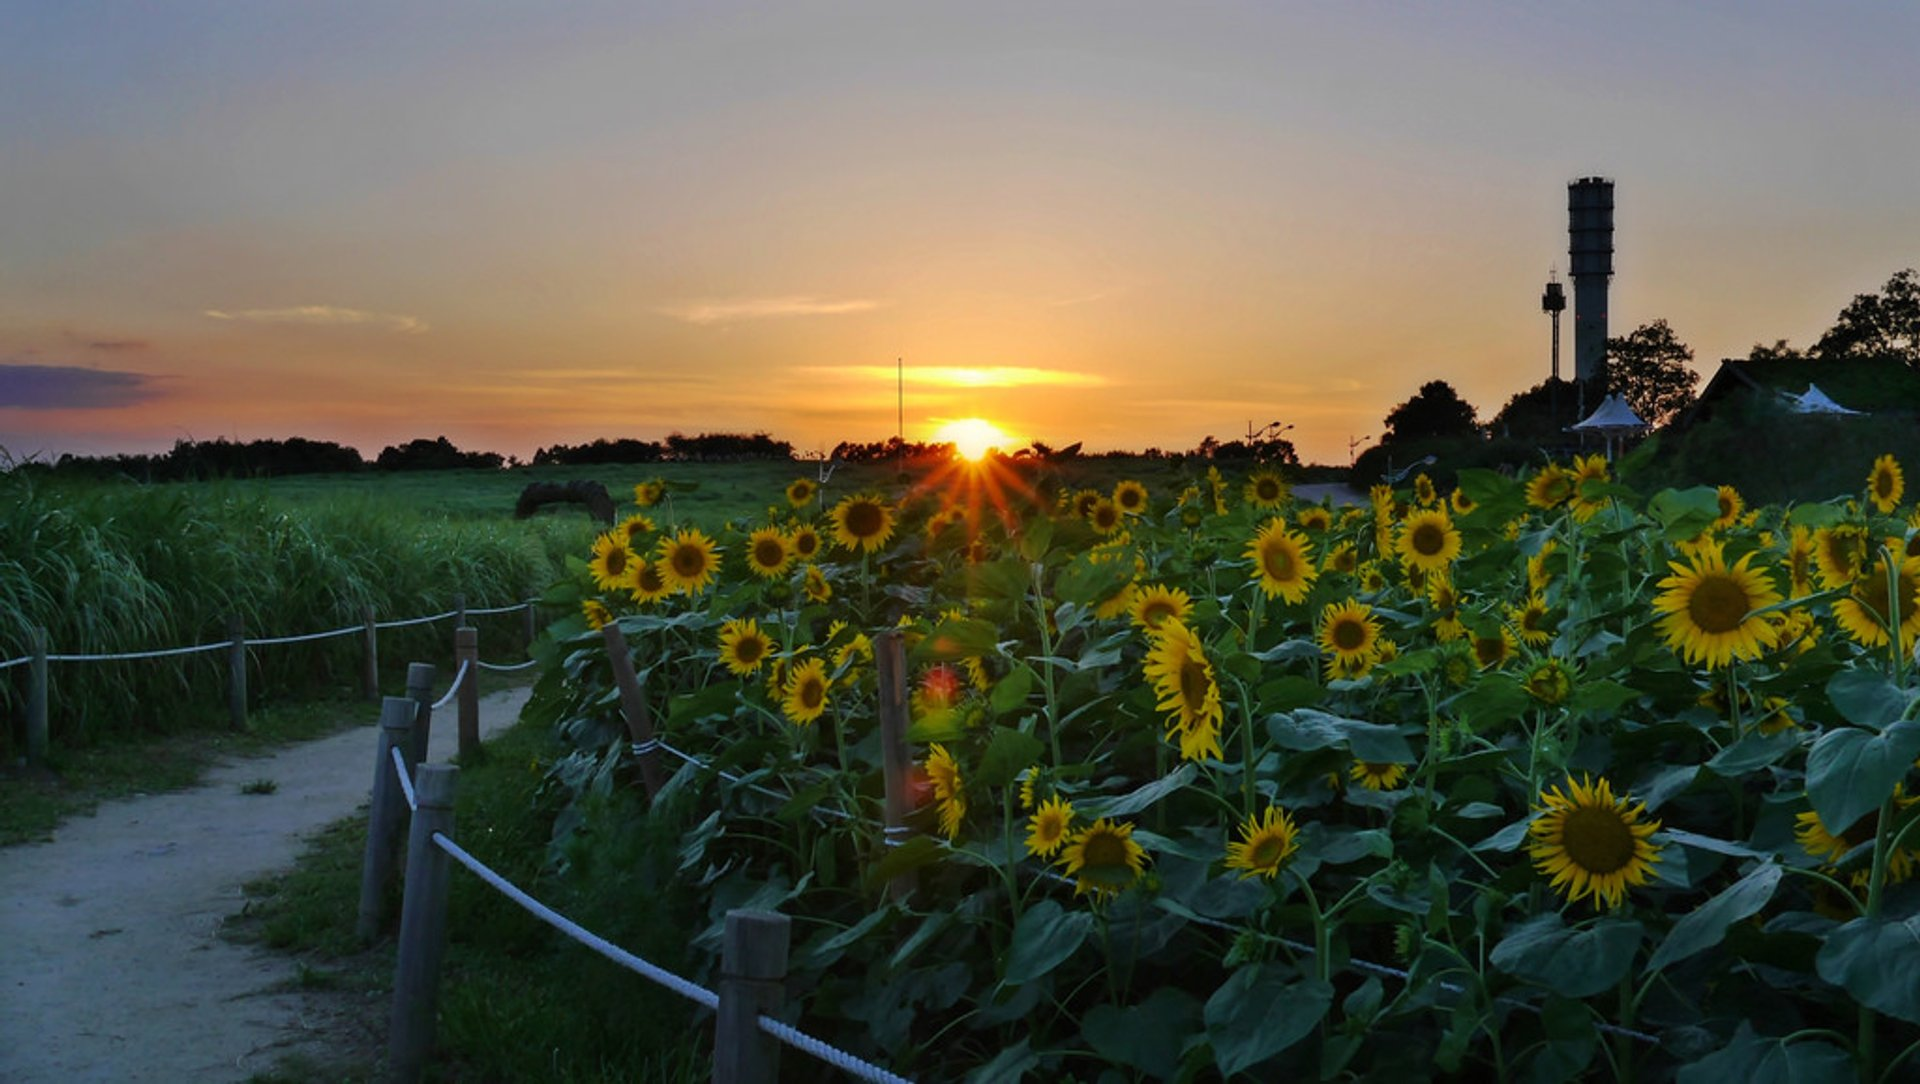 Best time for Sunflowers in South Korea